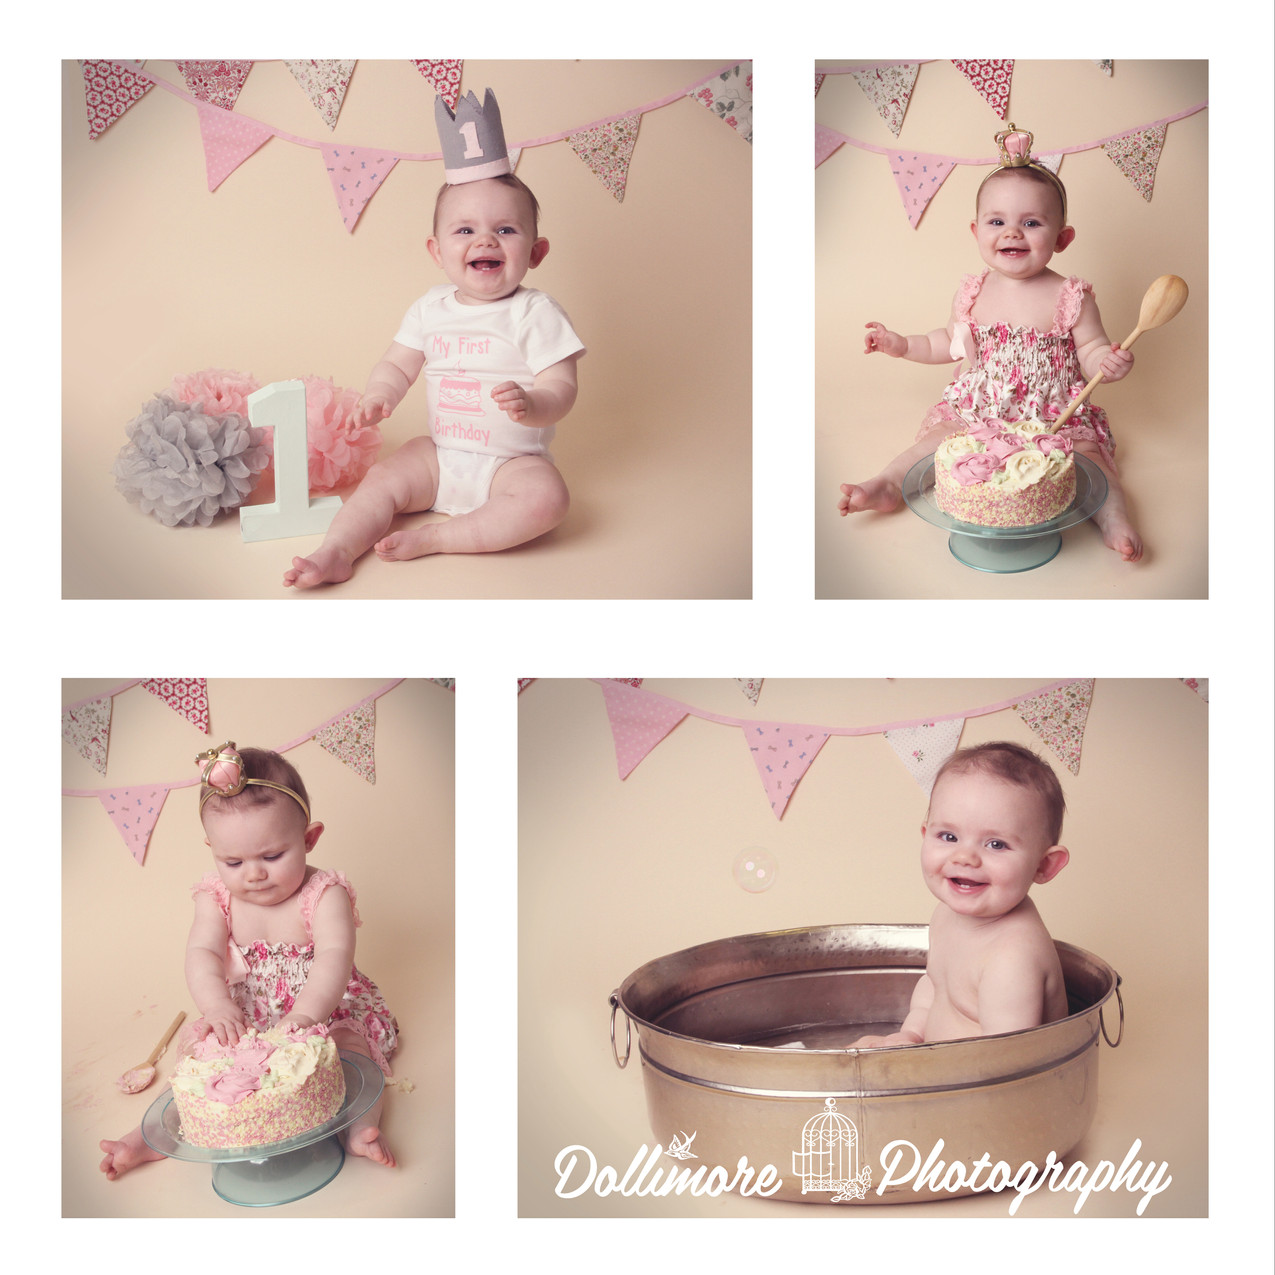 dollimore-photography-cake-smash-baby-chester